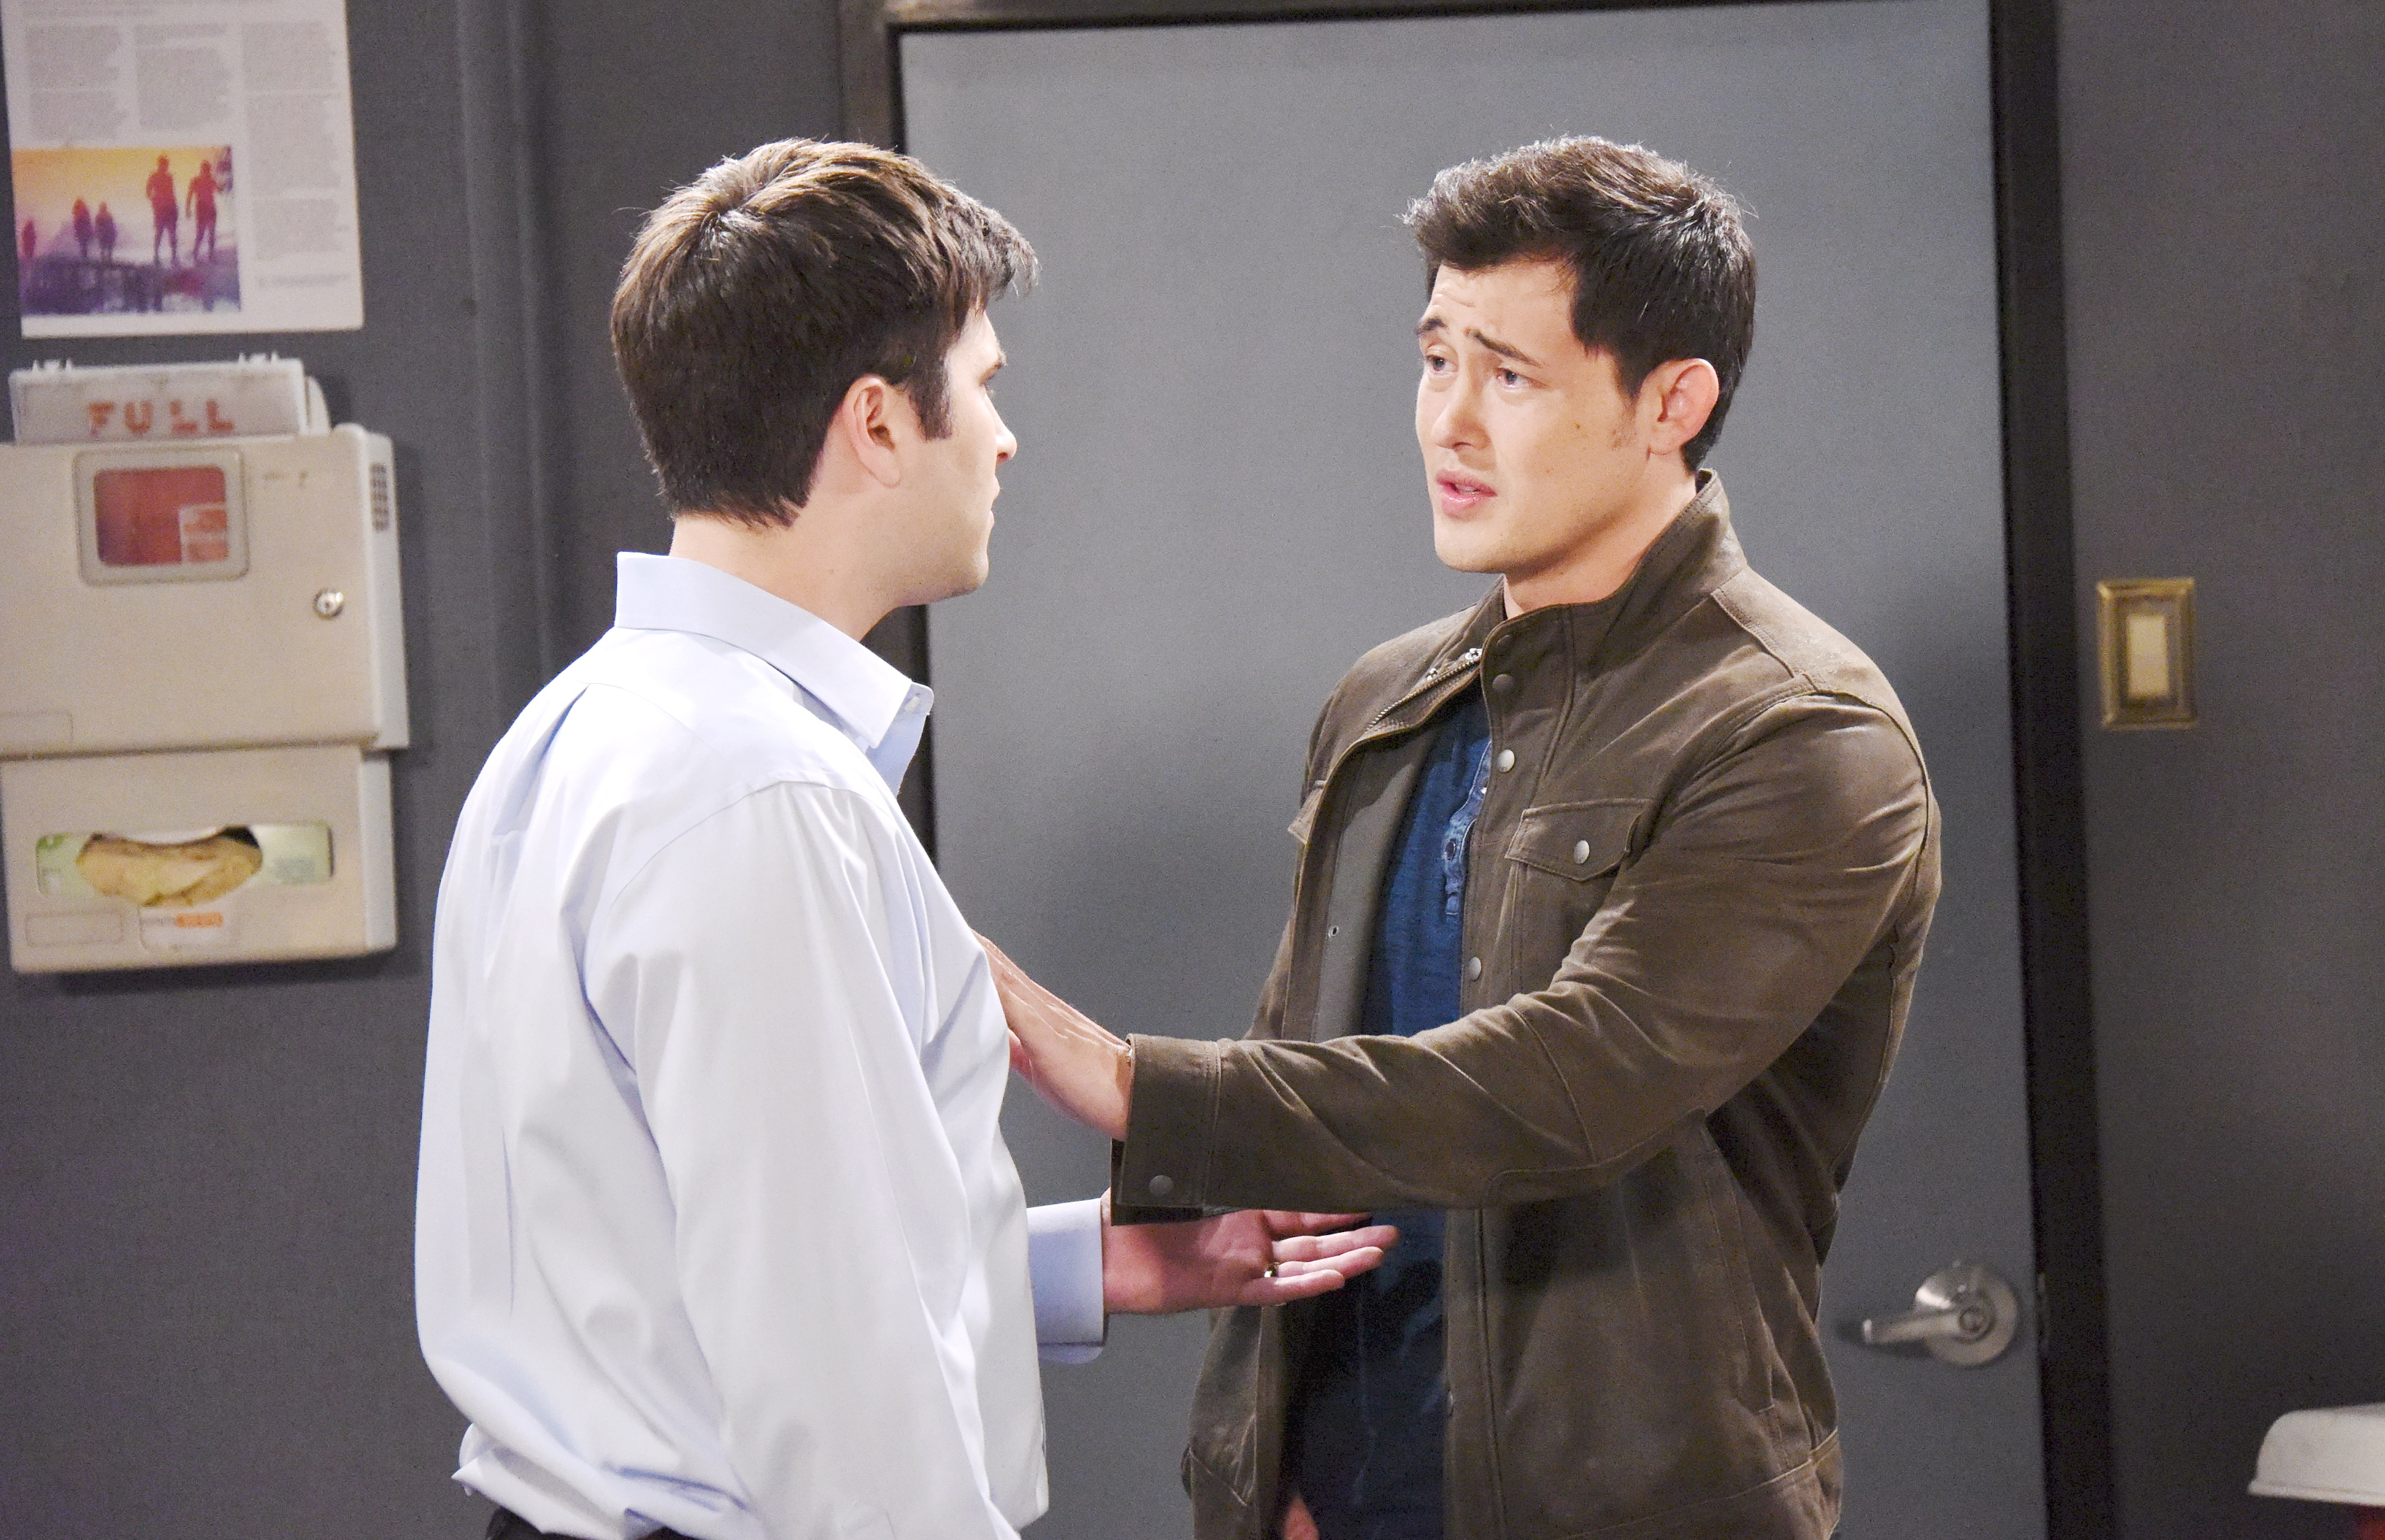 Days Of Our Lives Spoilers: Paul thanks Sonny for defending him, but Sonny makes clear all is not forgiven.